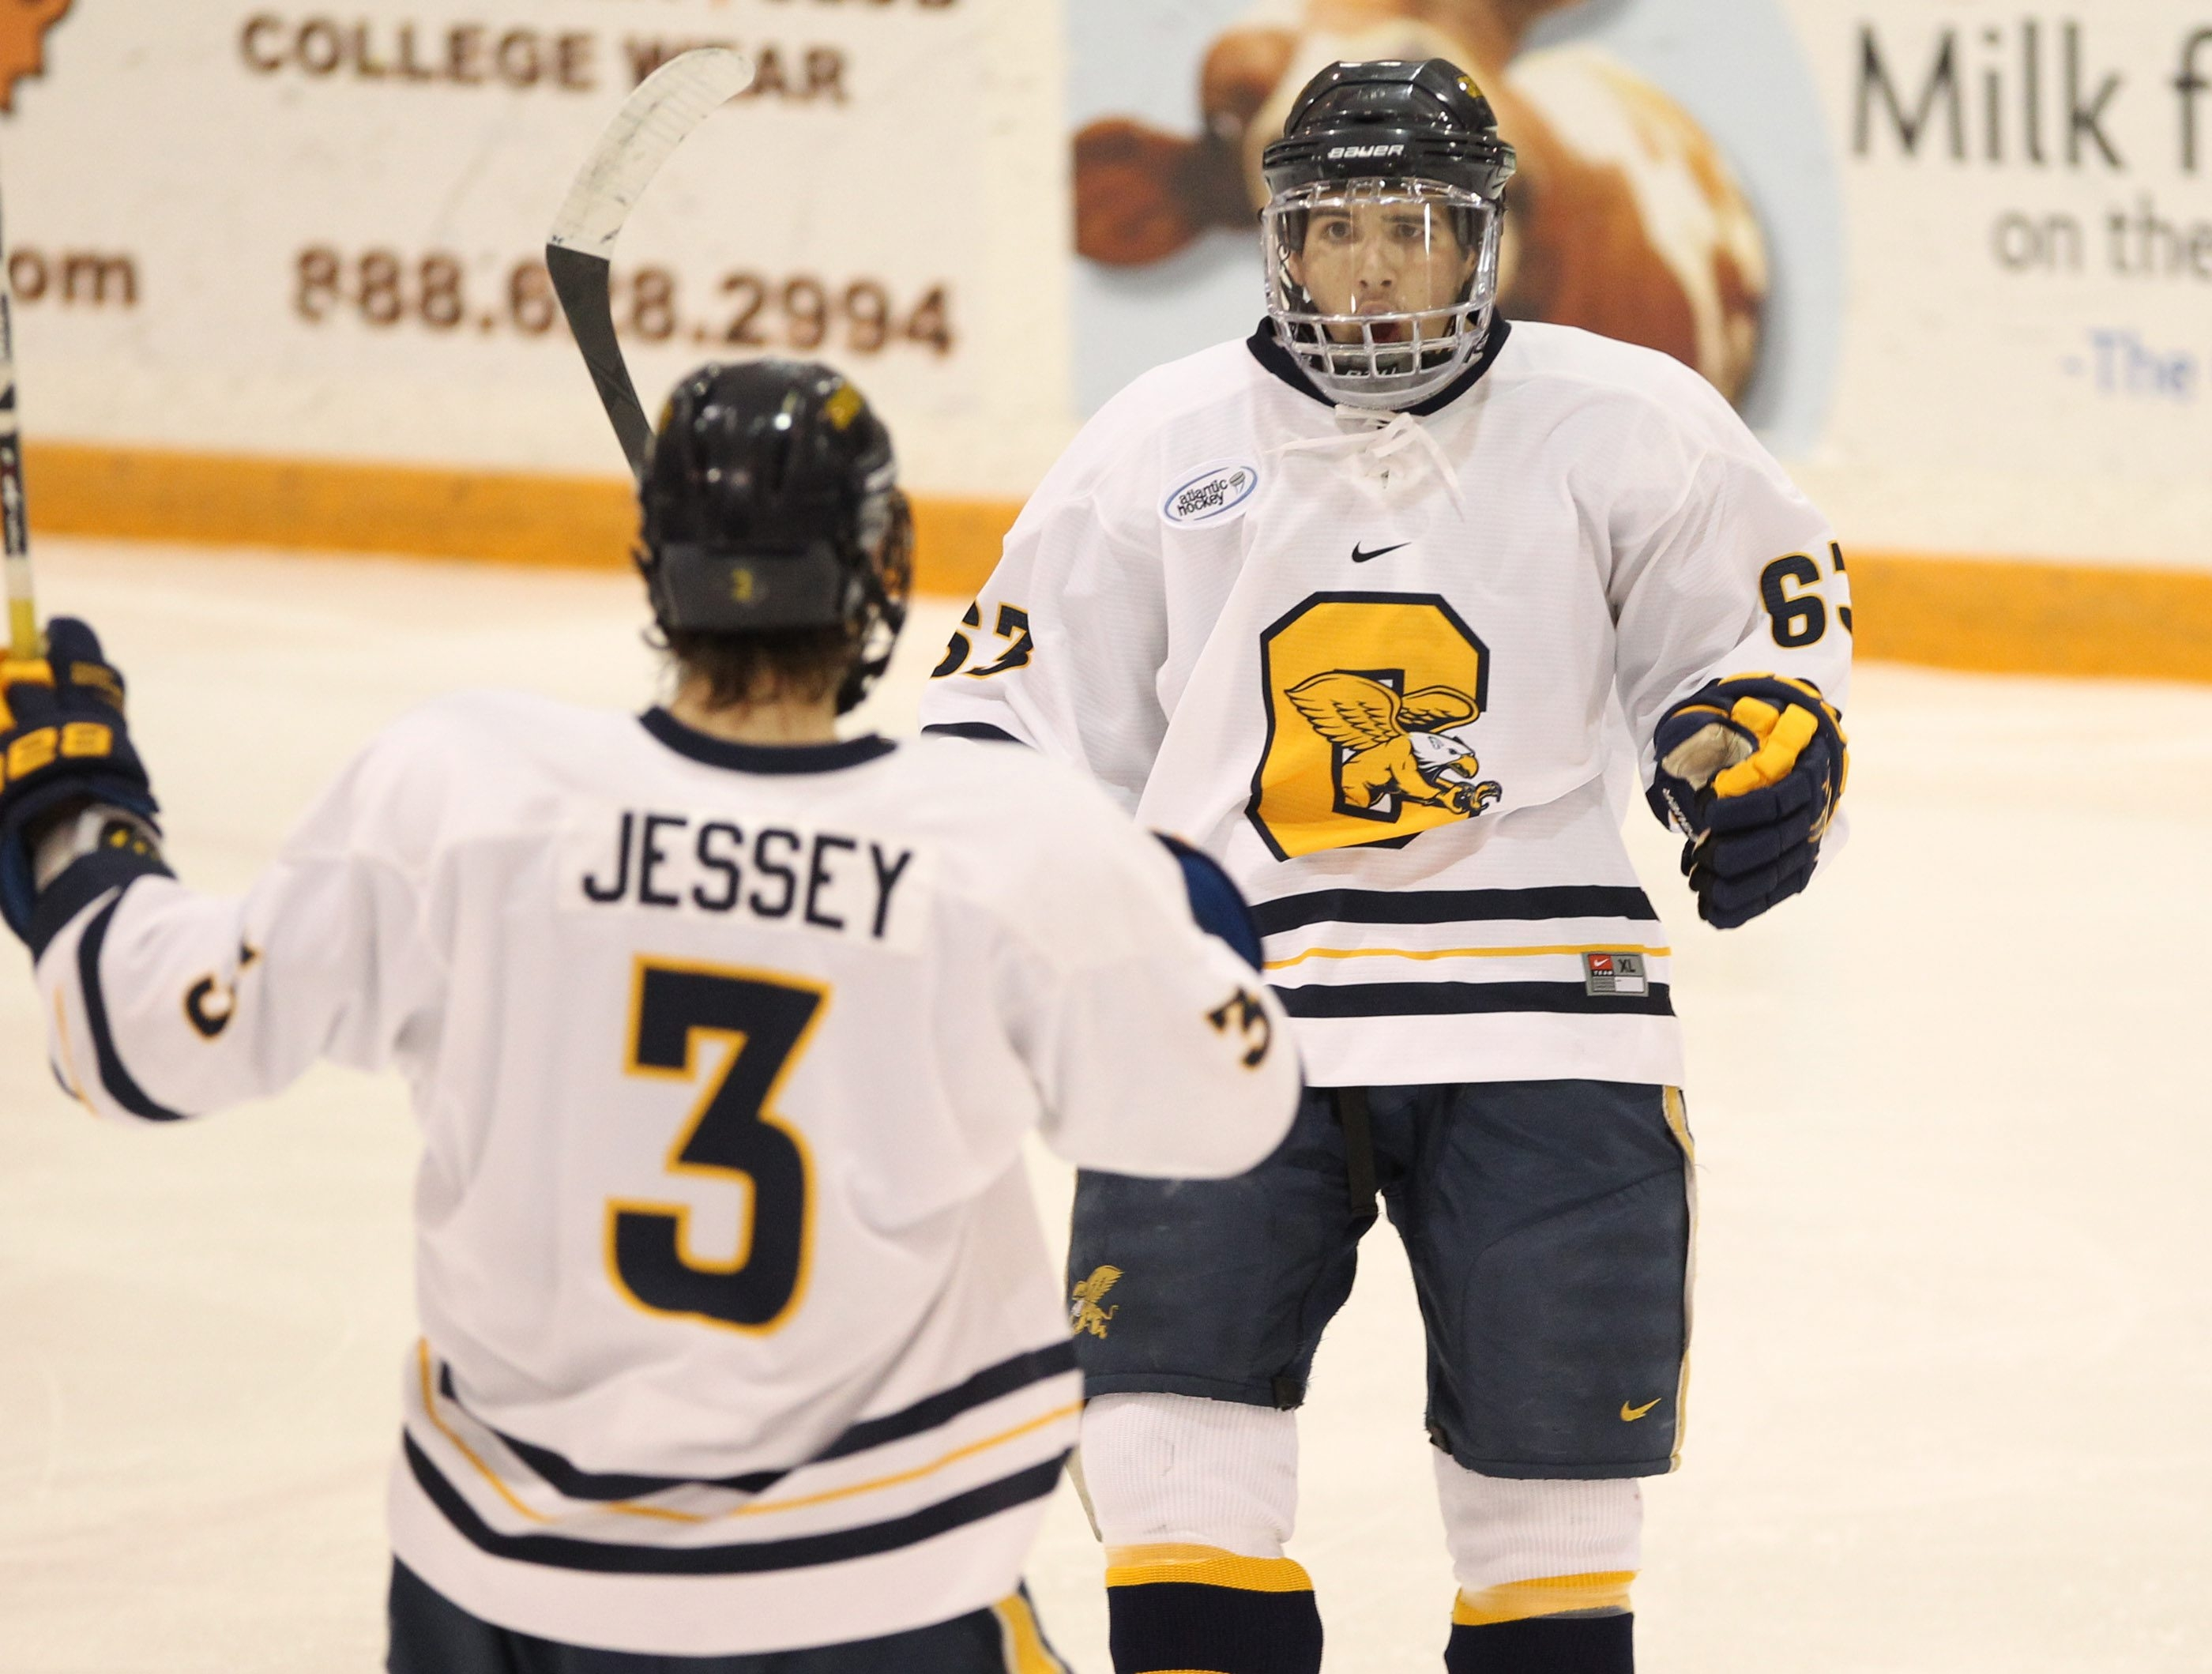 Doug Jessey of Canisius celebrates with teammate Shane Conacher after scoring a goal in the Griffs' 2-2 tie with UConn.